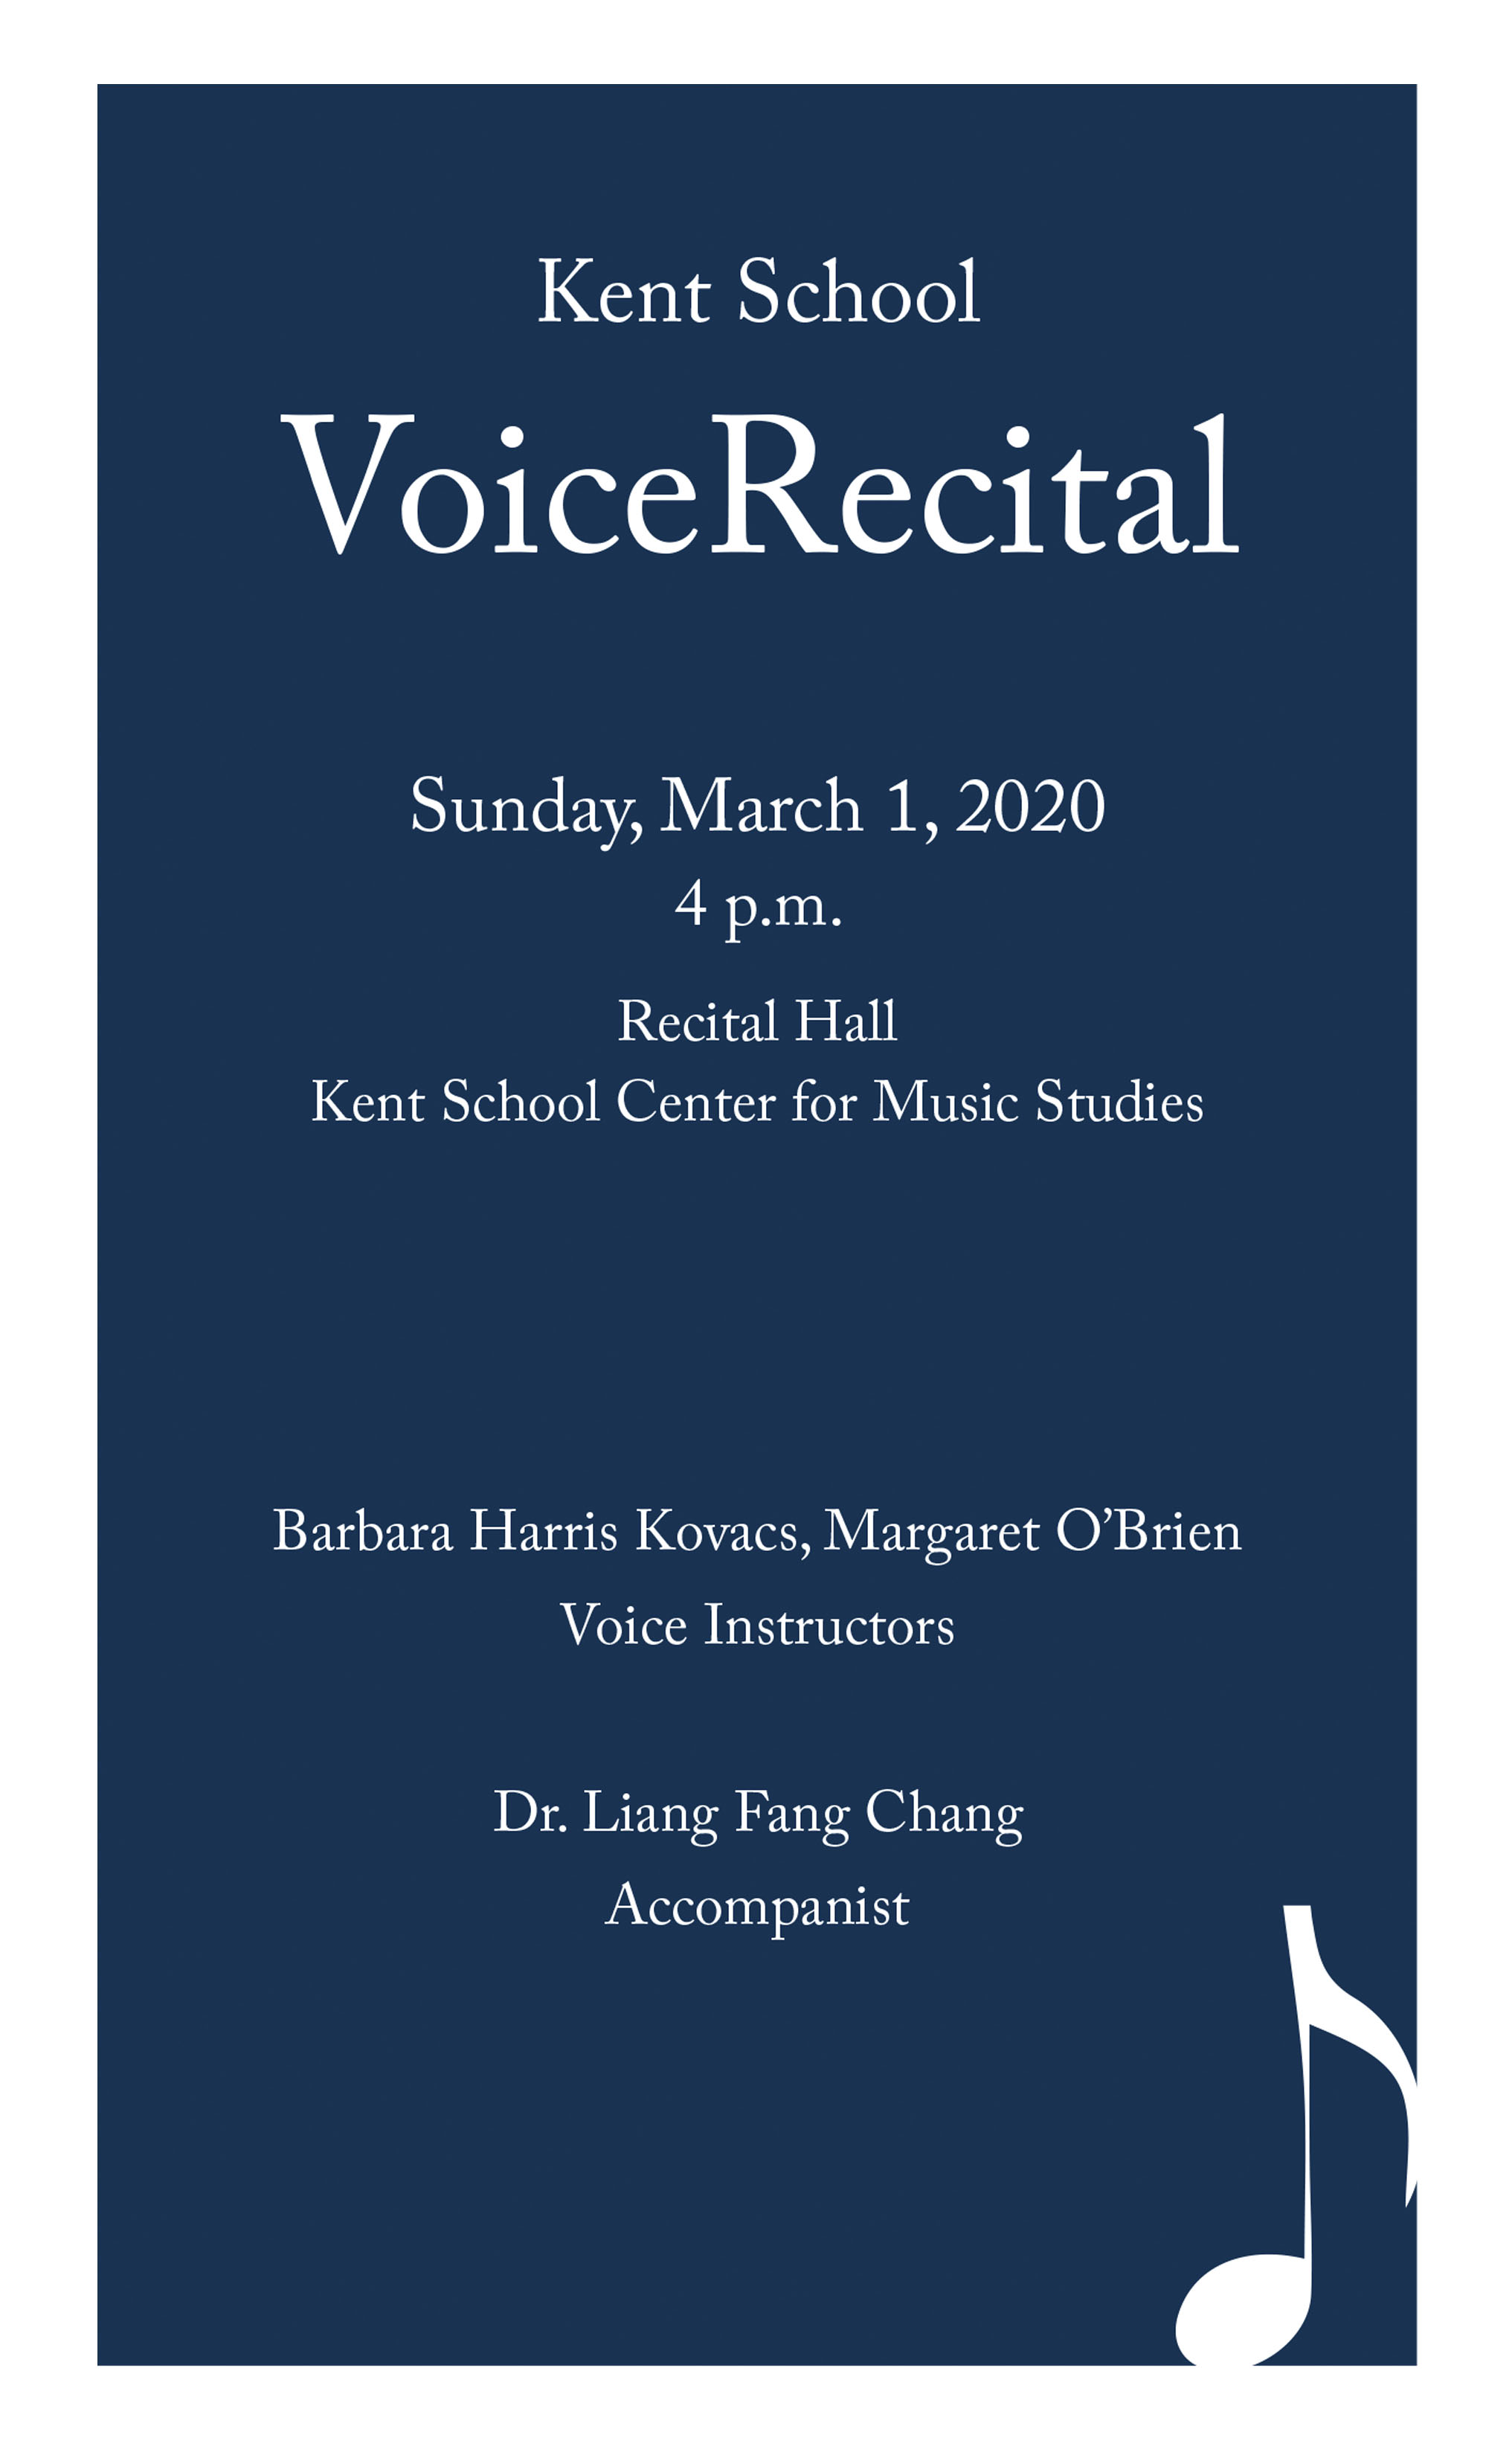 voice recital program